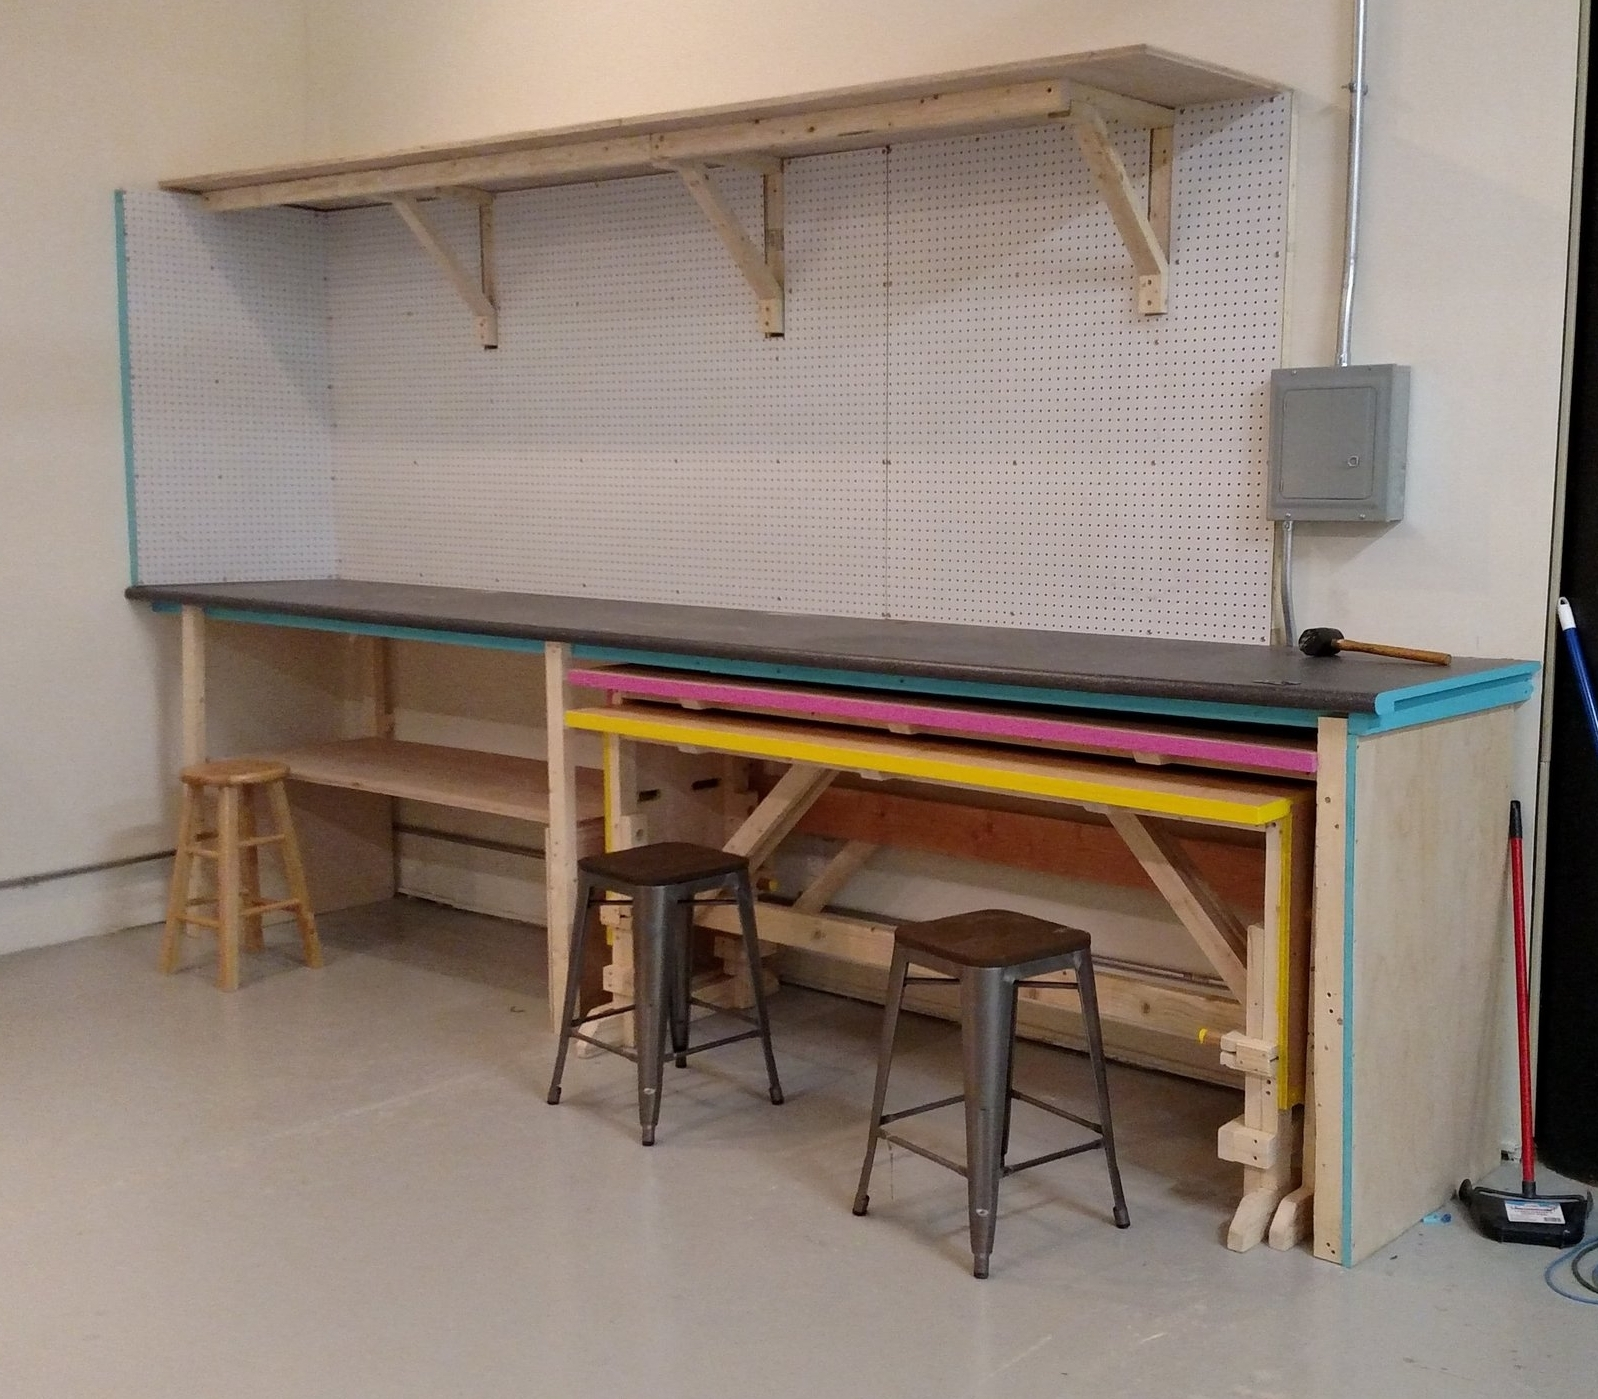 A custom work station built for the clients, 3D printing company. The space is intended to be highly flexible, with two custom-designed pull-out work benches and flexible storage space on the walls.